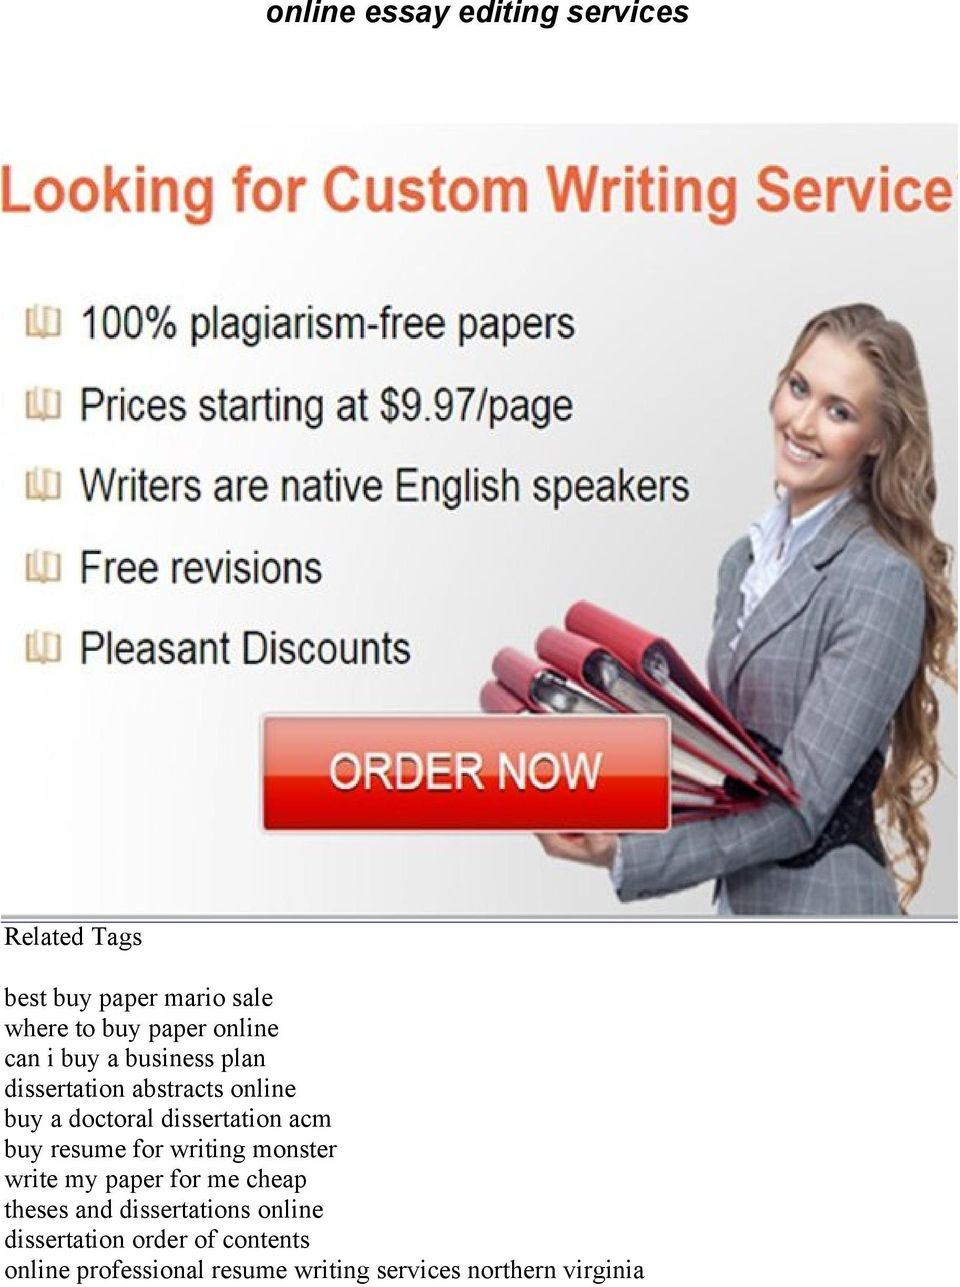 acm buy resume for writing monster write my paper for me cheap theses and dissertations